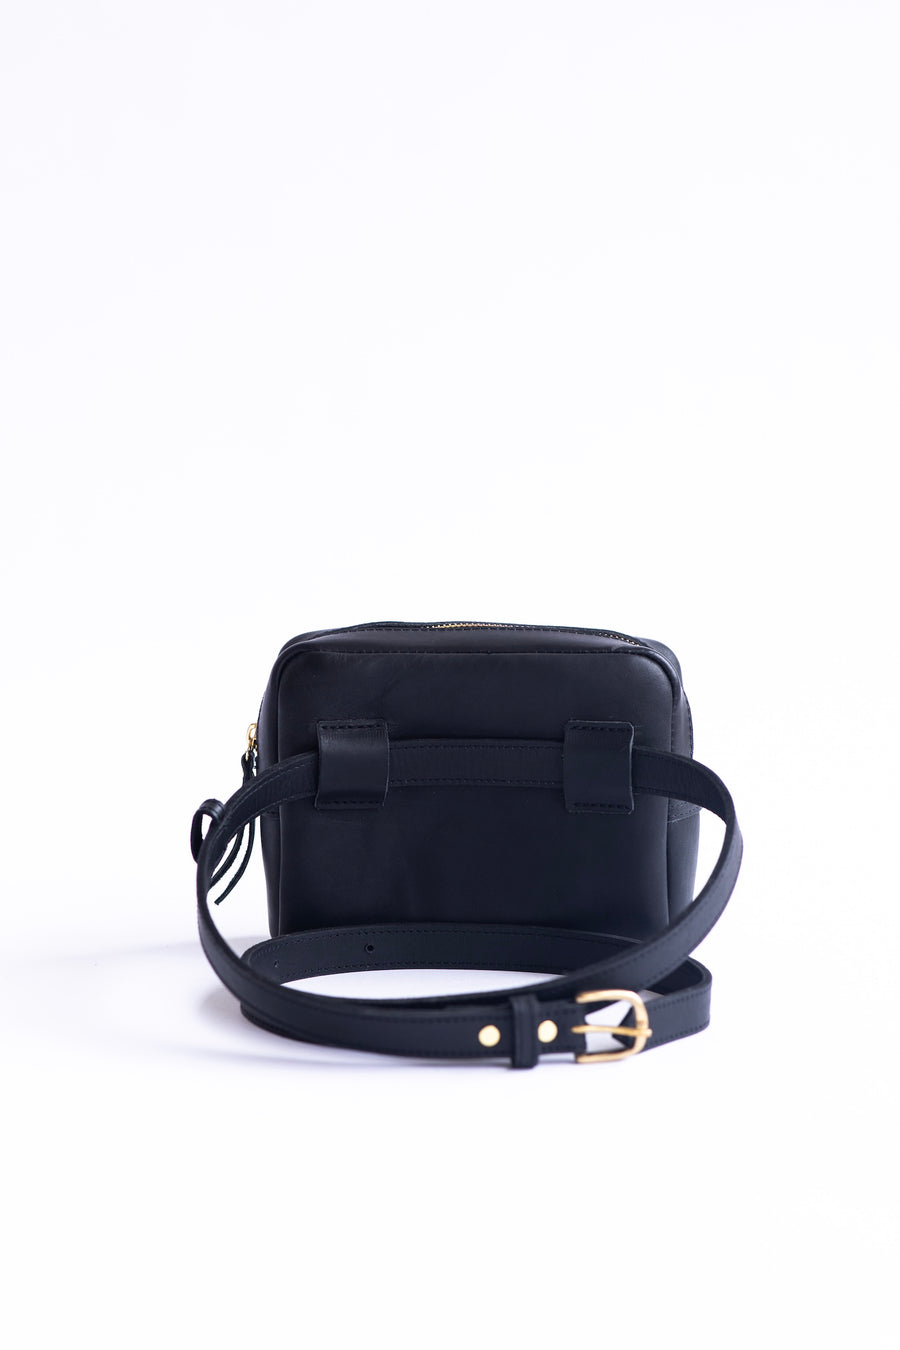 leather belt bag, fanny pack